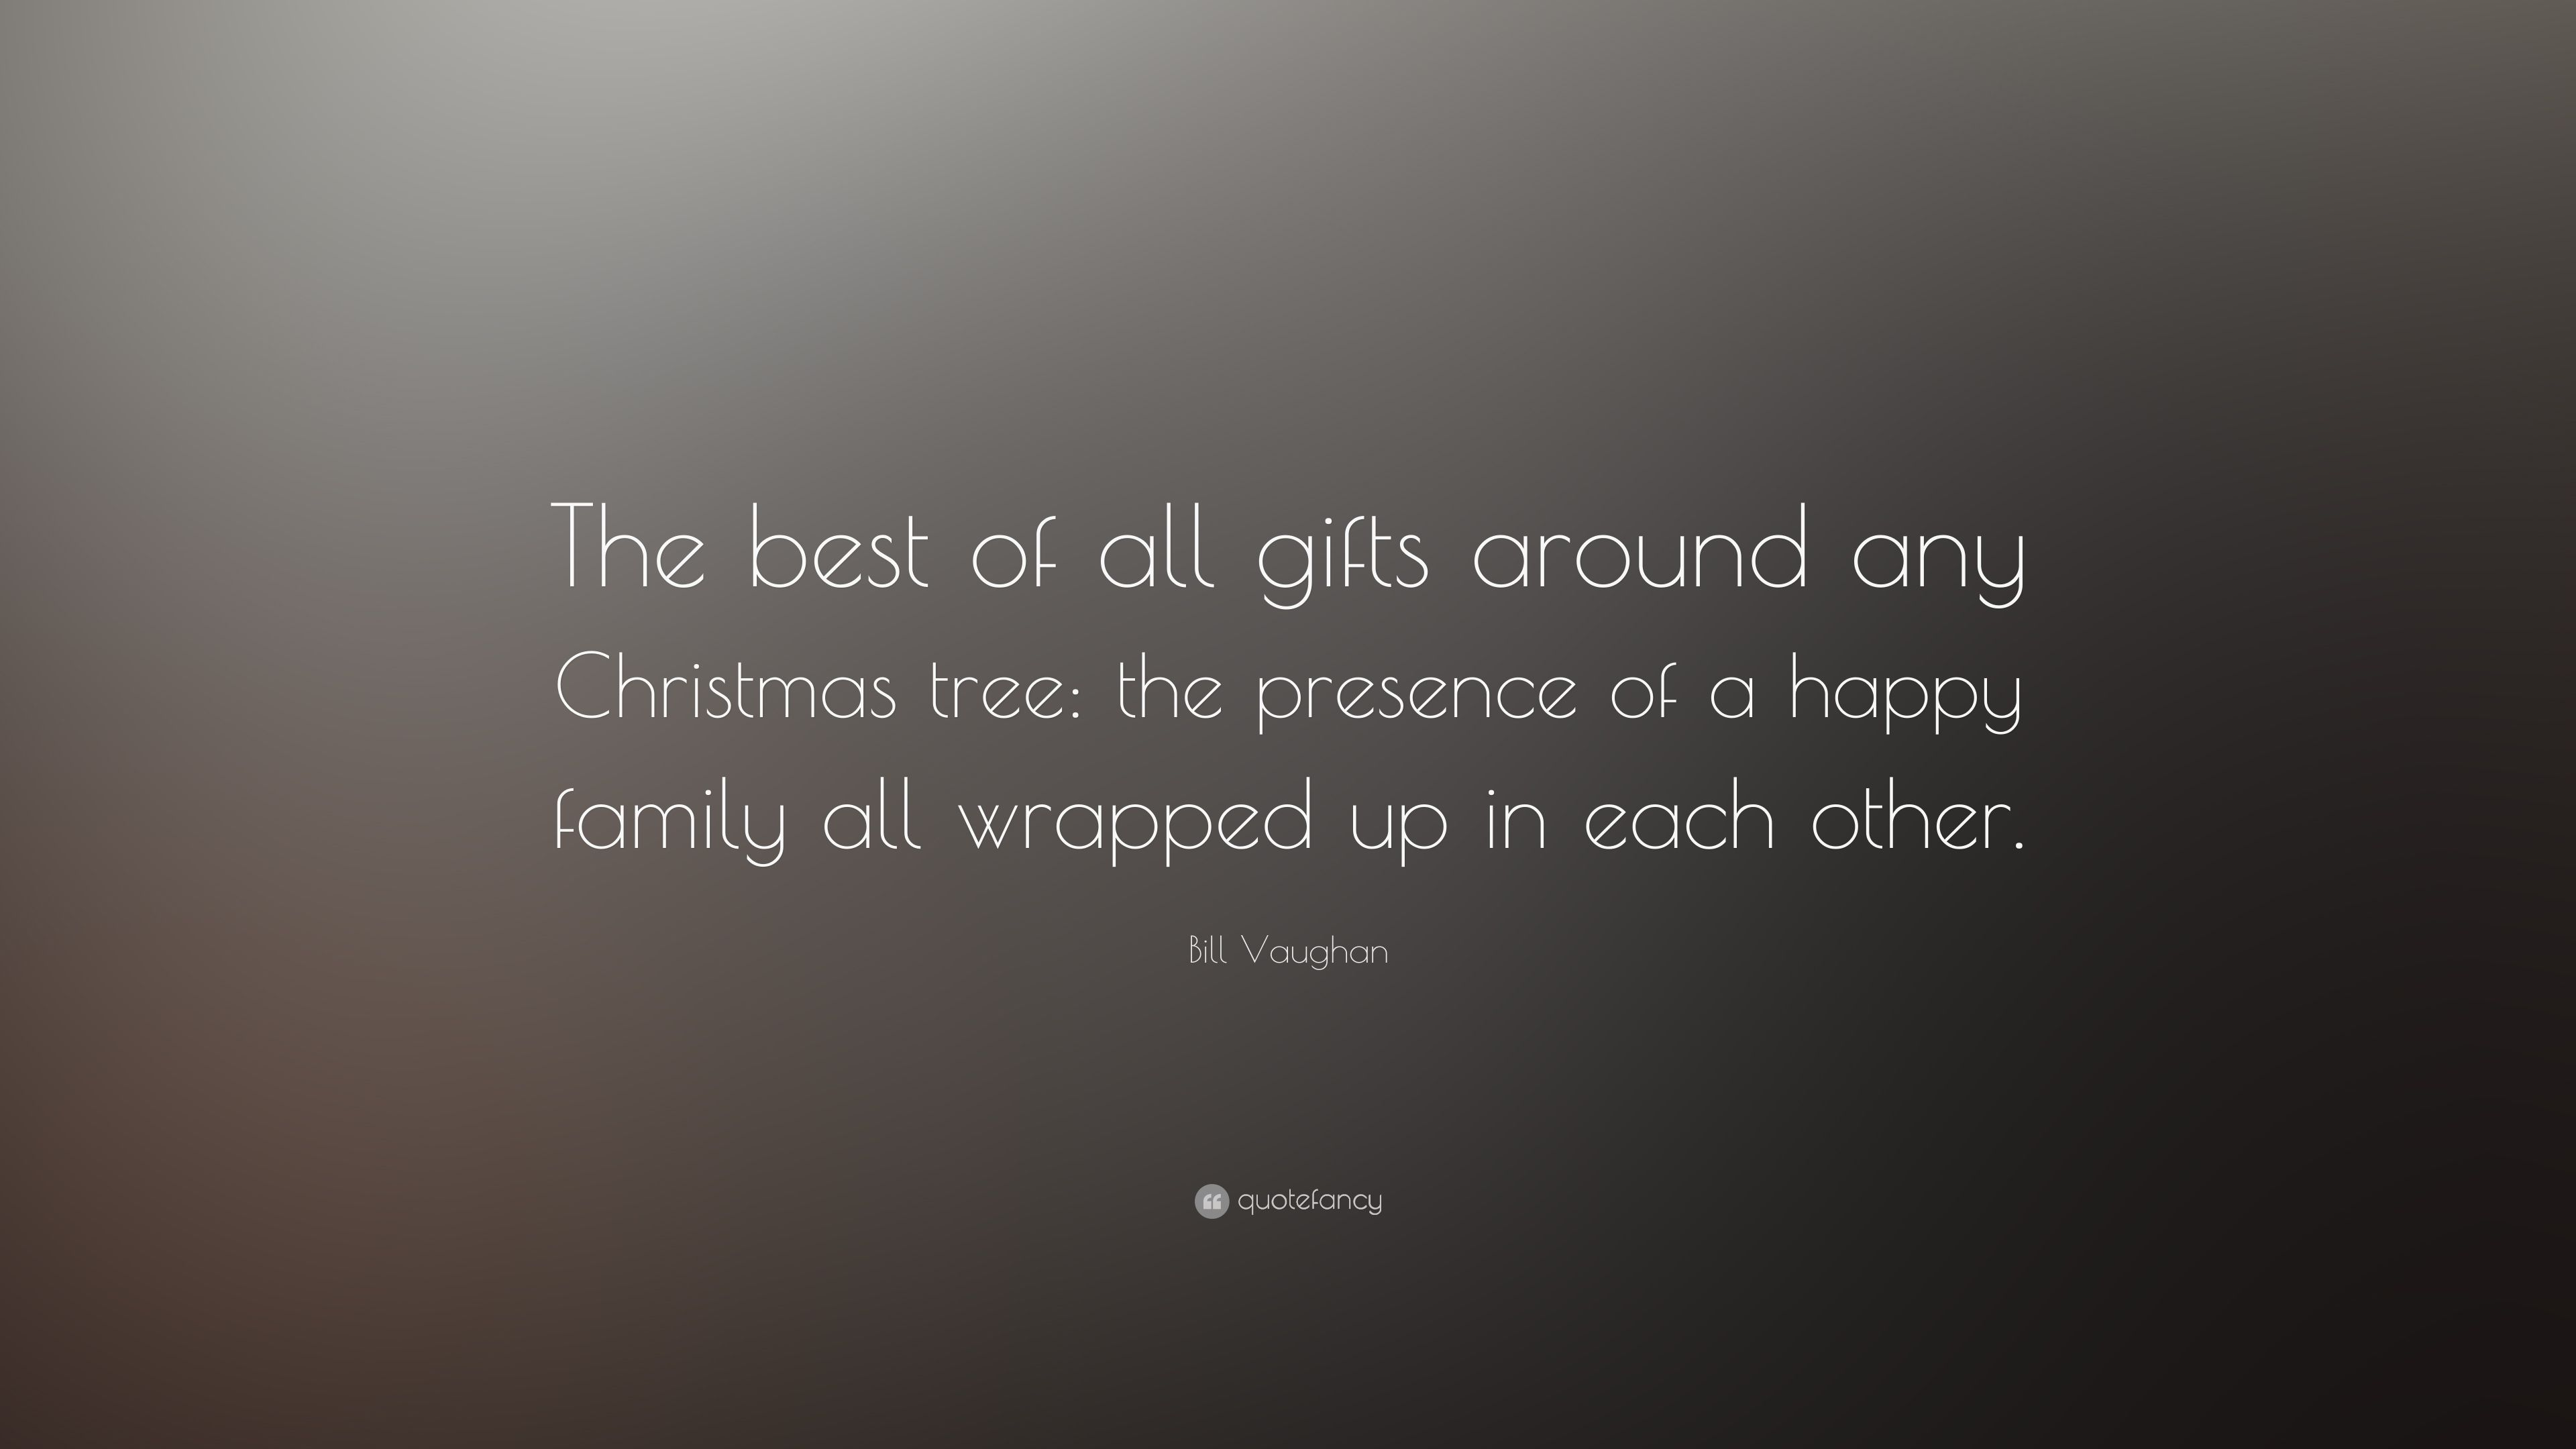 Bill Vaughan Quote: U201cThe Best Of All Gifts Around Any Christmas Tree: The